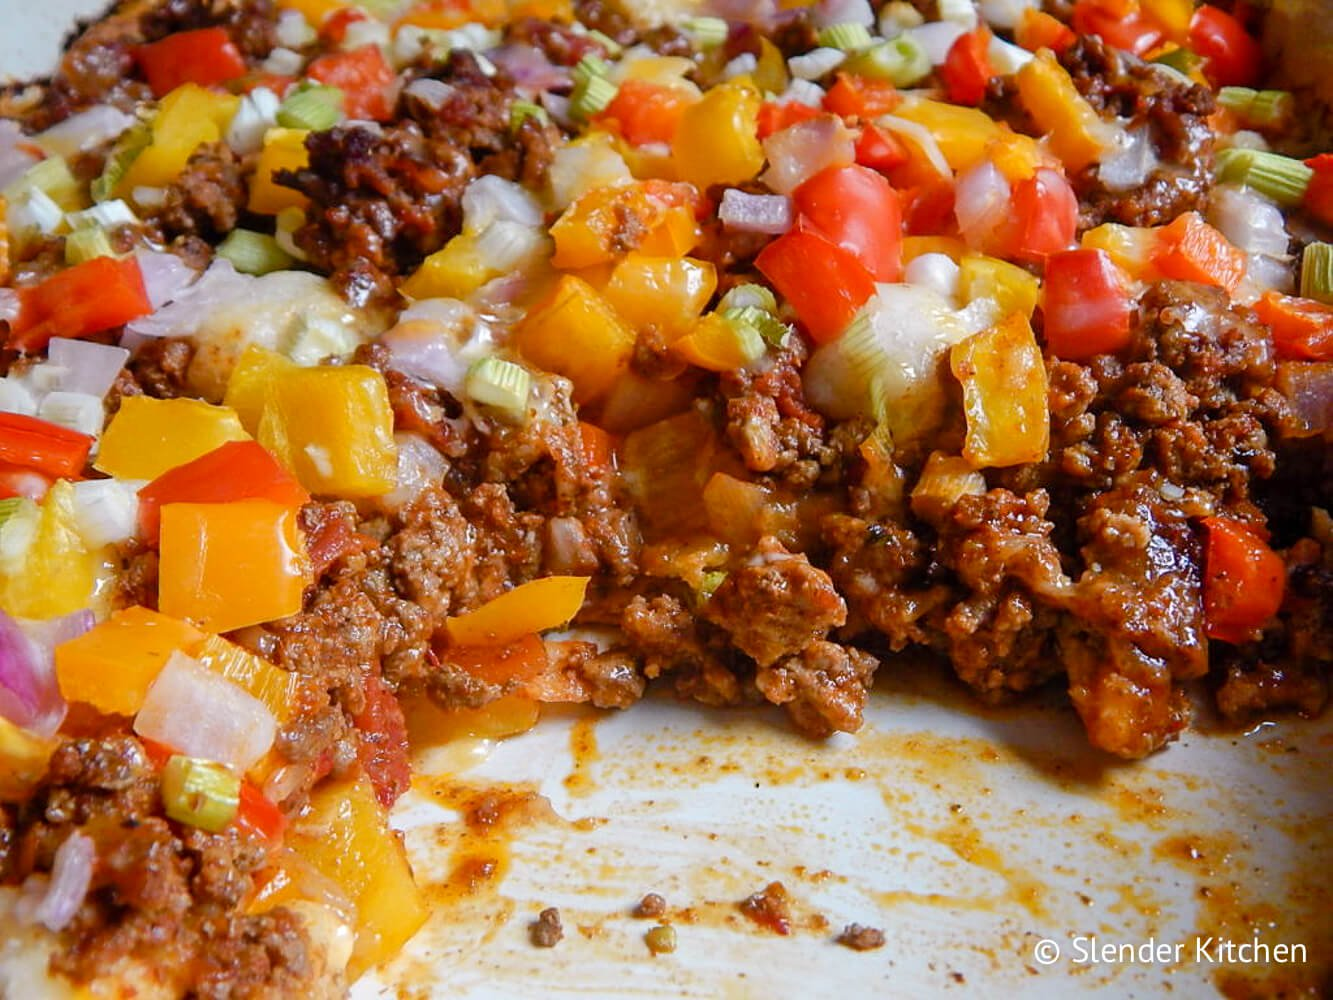 Cooked Taco Bubble Up from the side so you can see the layer of biscuit, meat, veggies, and cheese.